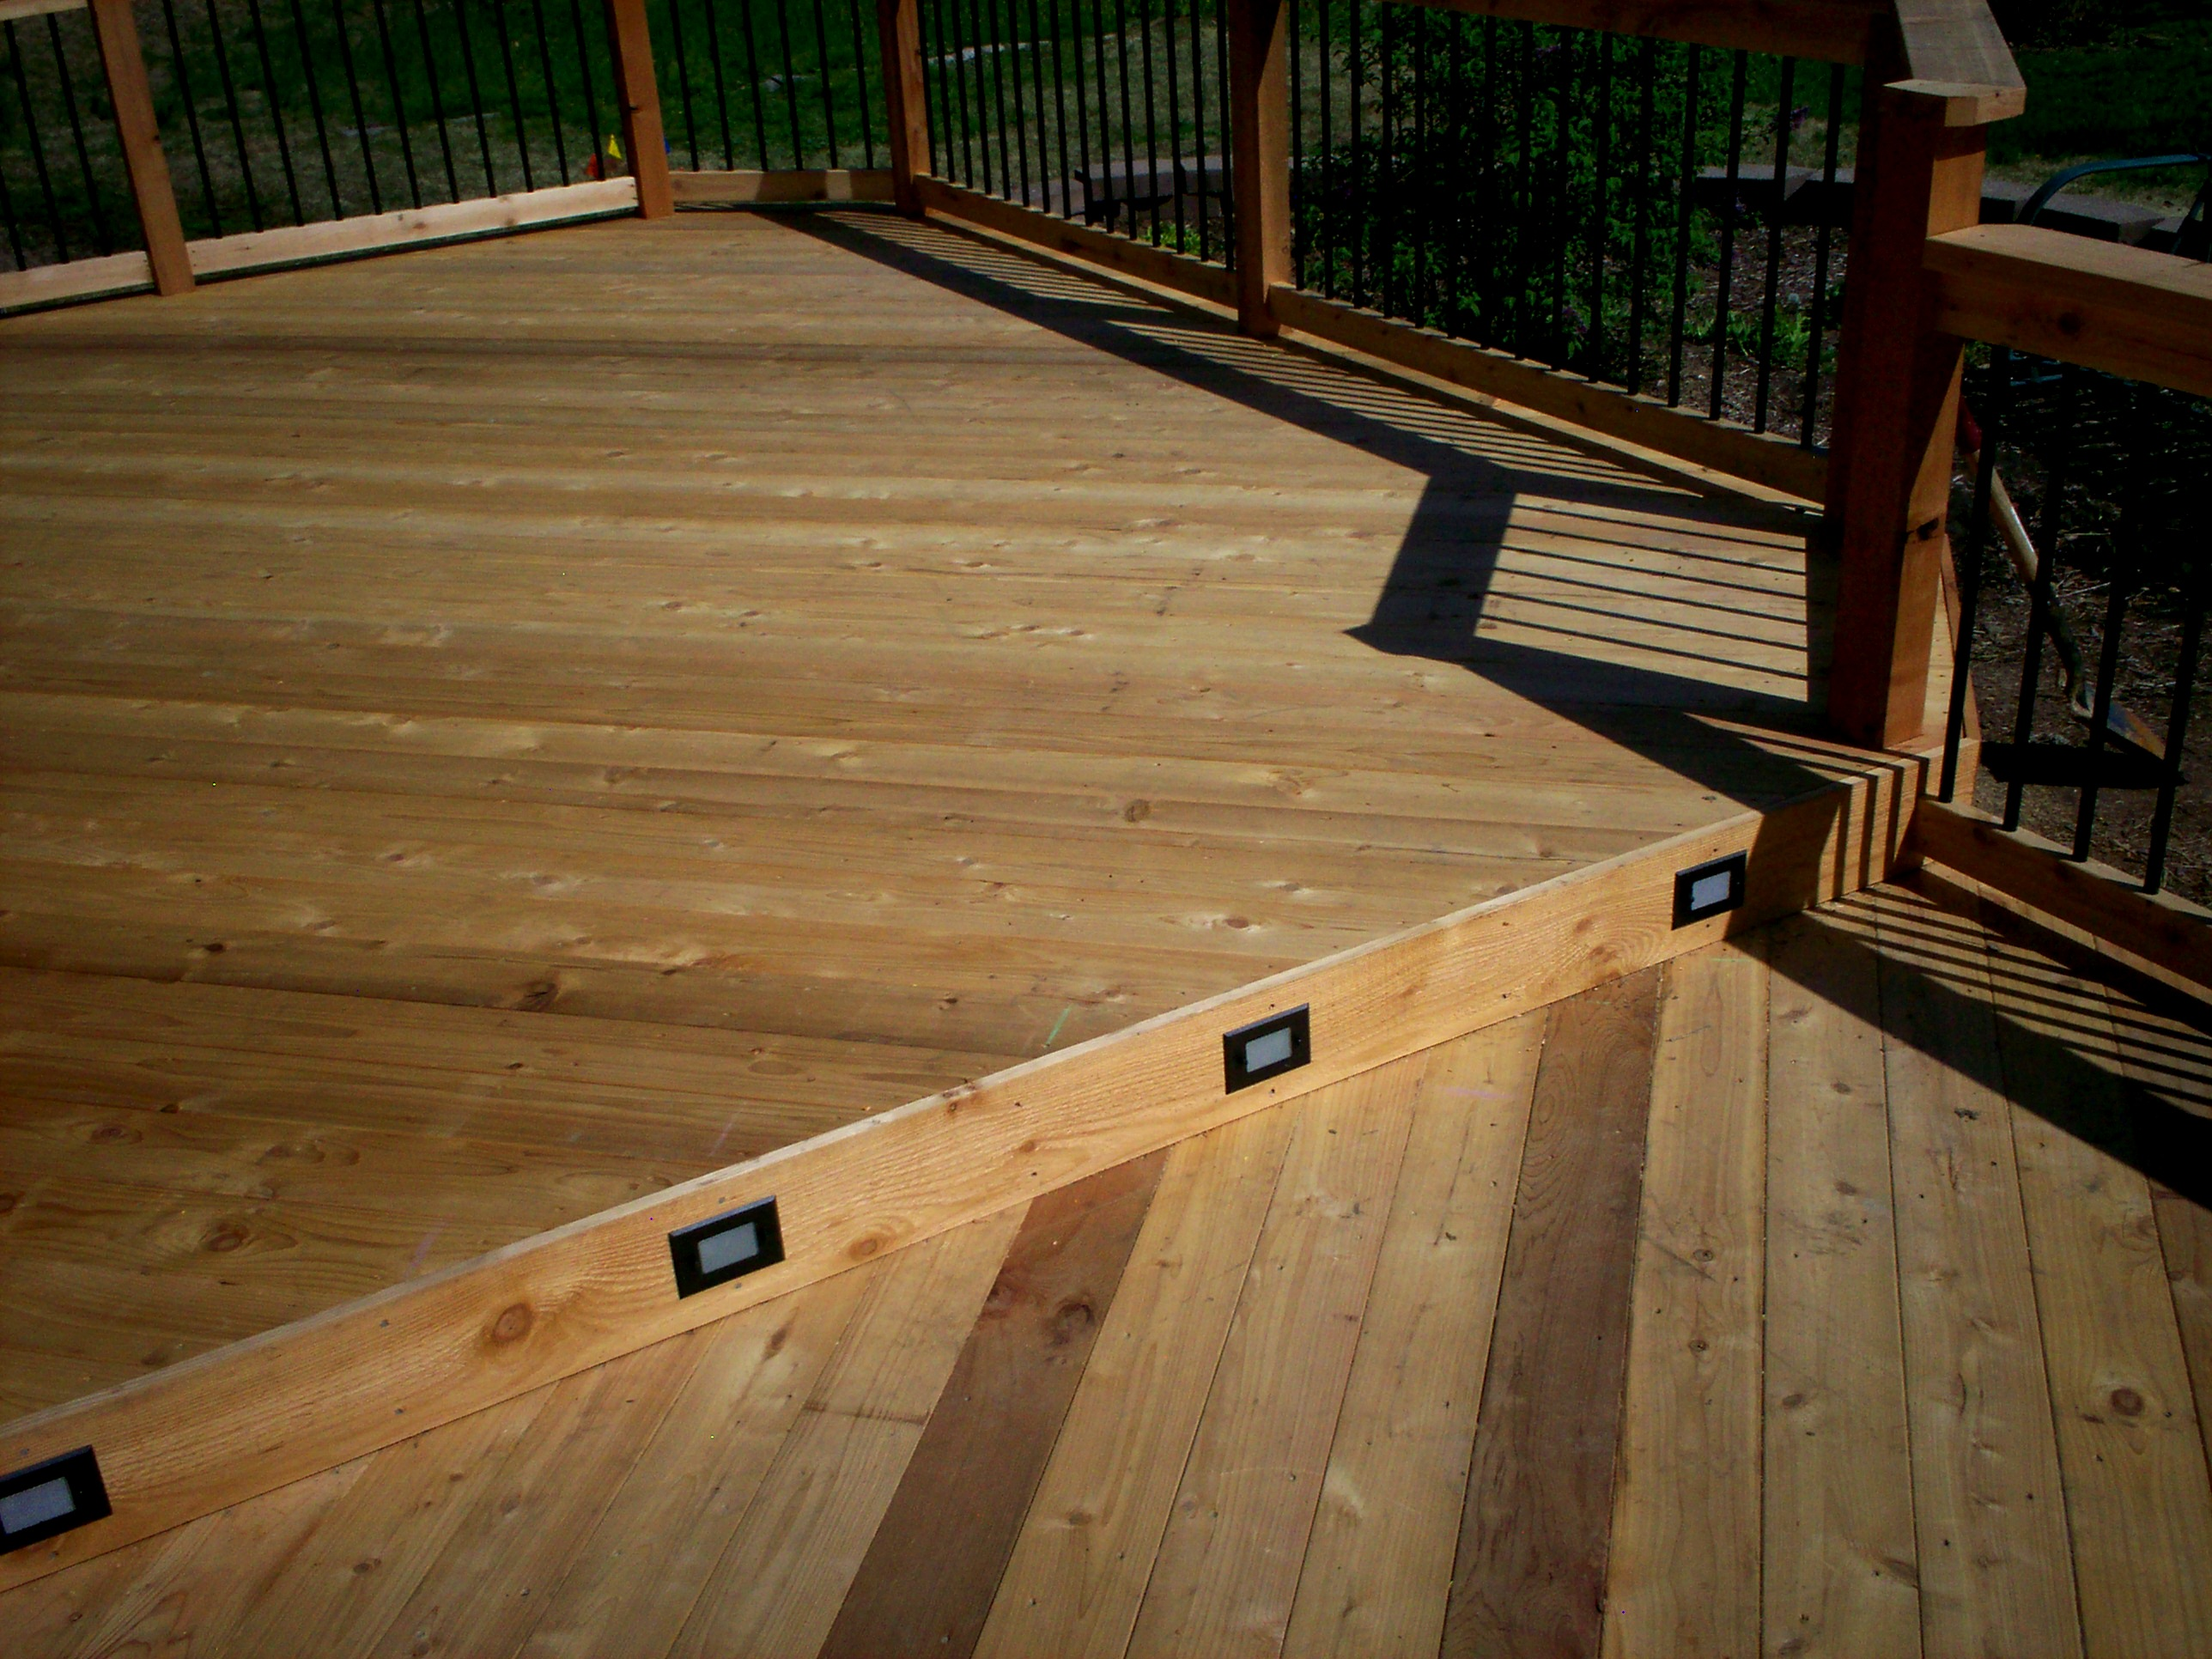 Deck rail lighting st louis decks screened porches pergolas by deck step riser lighting by archadeck st louis aloadofball Choice Image